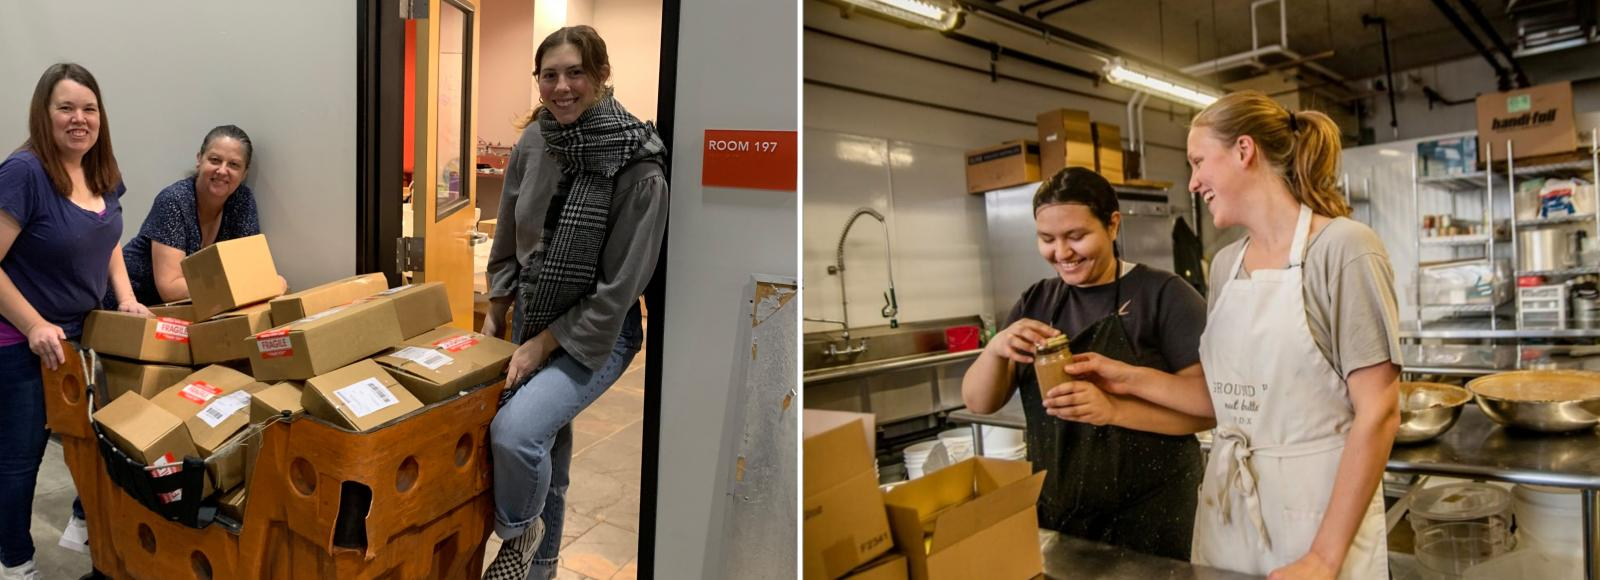 Two photos side-by-side. In the left photo, three woman are standing in front of an office doorway. Between them is a cart filled with cardboard boxes marked 'Fragile.' In the right photo, a woman smiles as she holds a jar of unlabeled nut butter. Another woman standing to her left laughs as her right arm extends toward the same jar of nut butter. They are standing in an industrial kitchen.